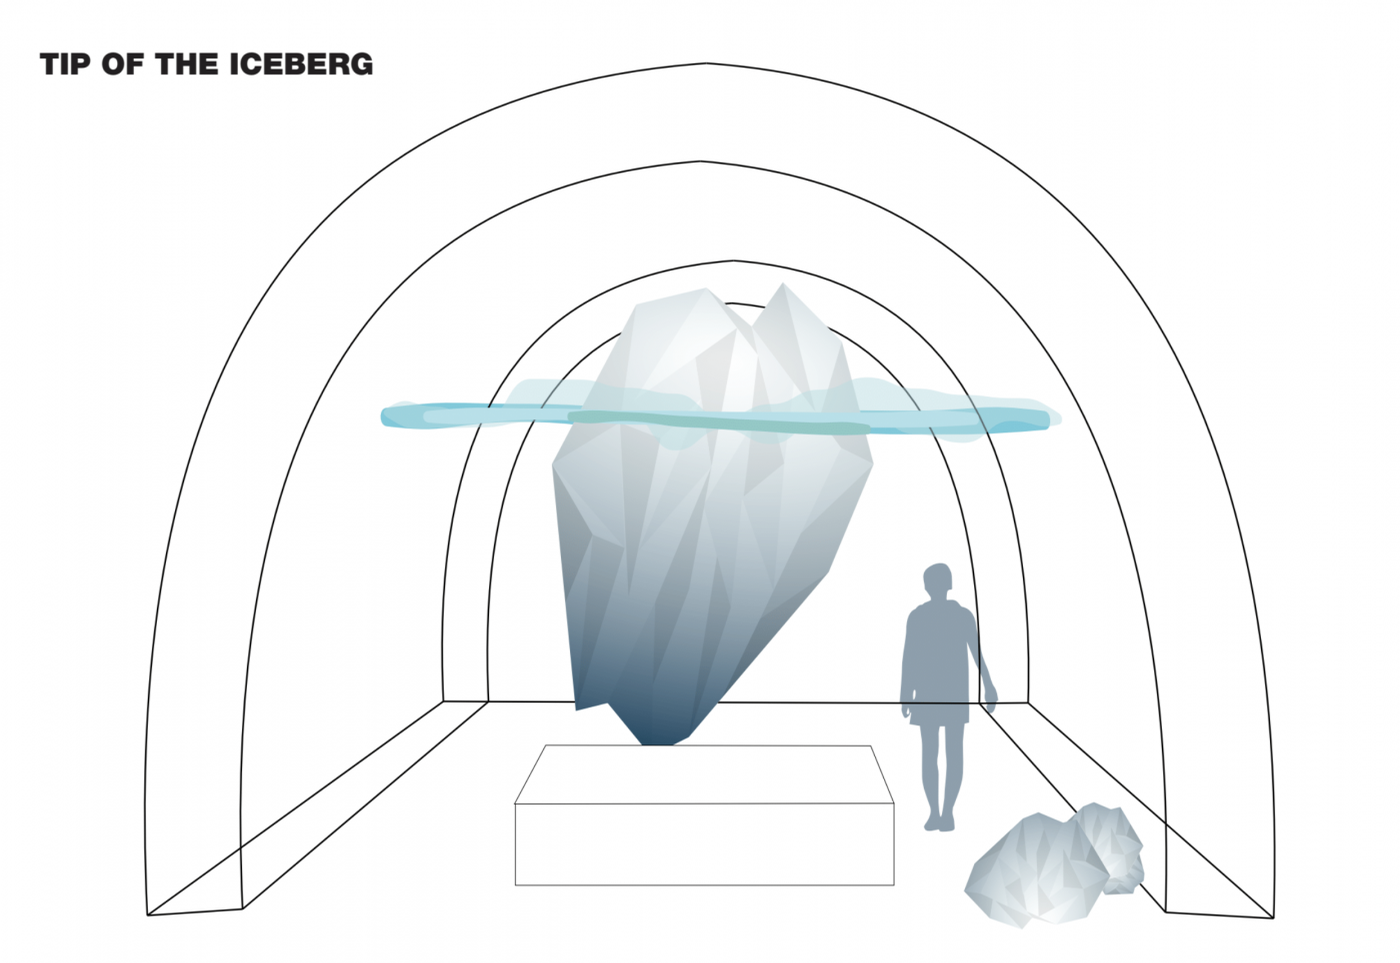 'Tip of The Iceberg' created by Franziska Agrawal